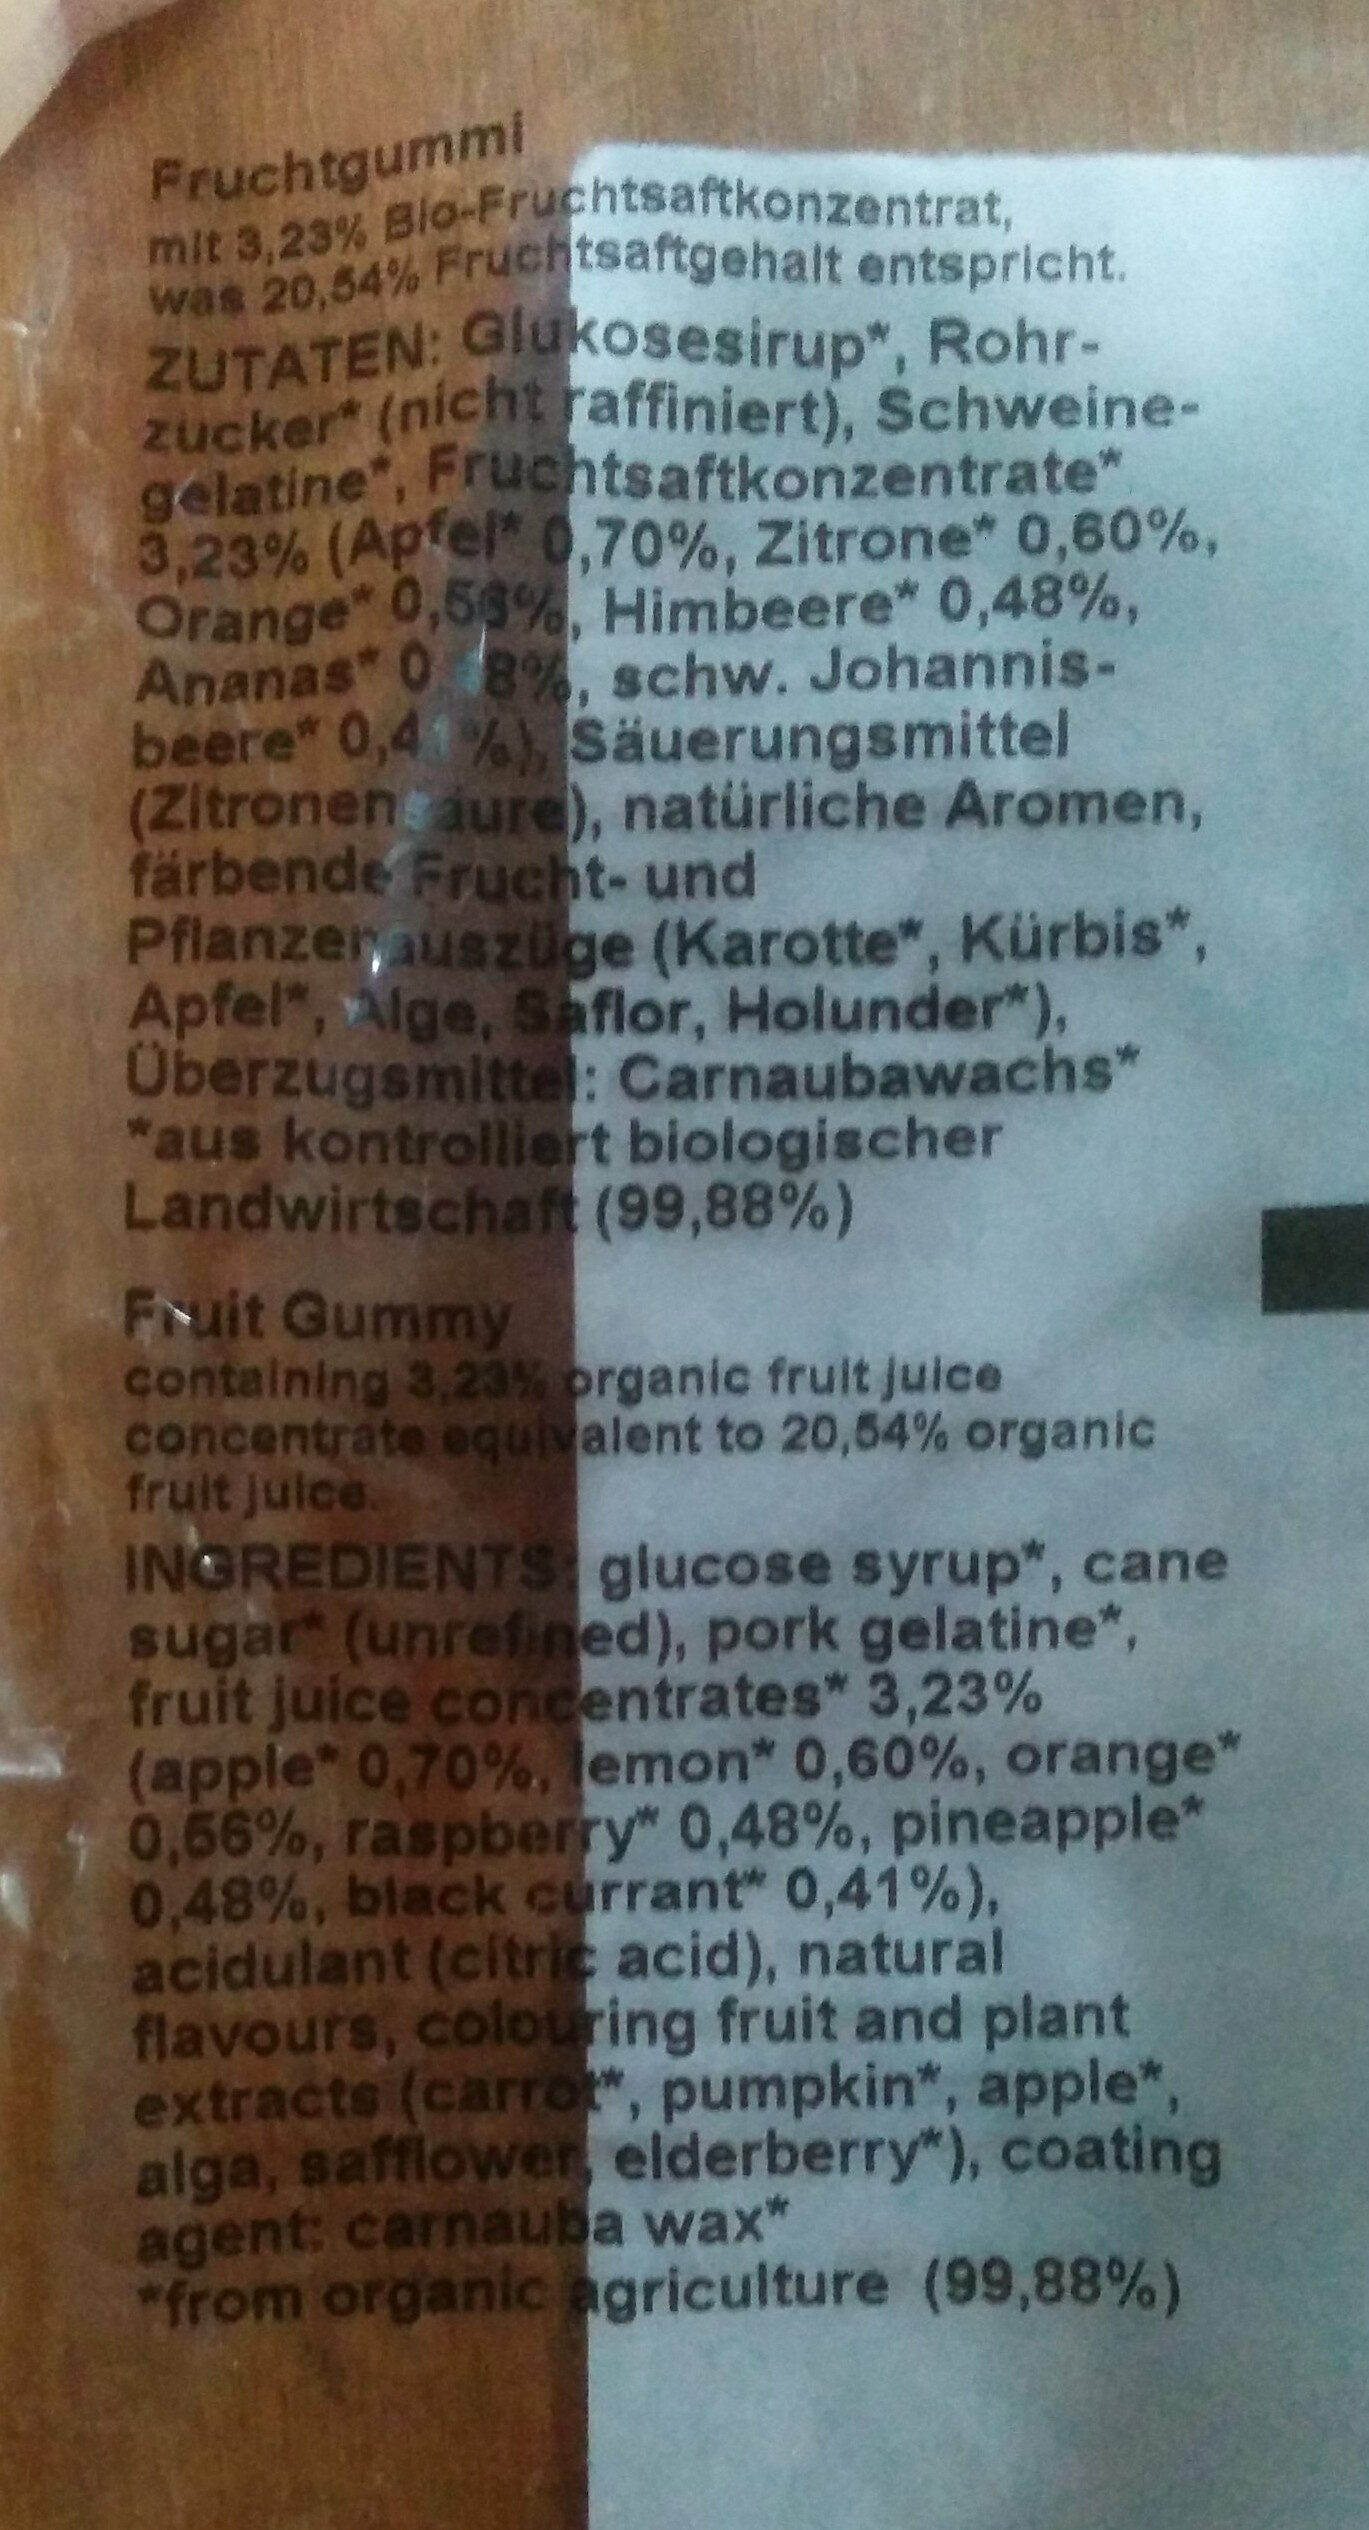 Ökovital-Bär - Ingredients